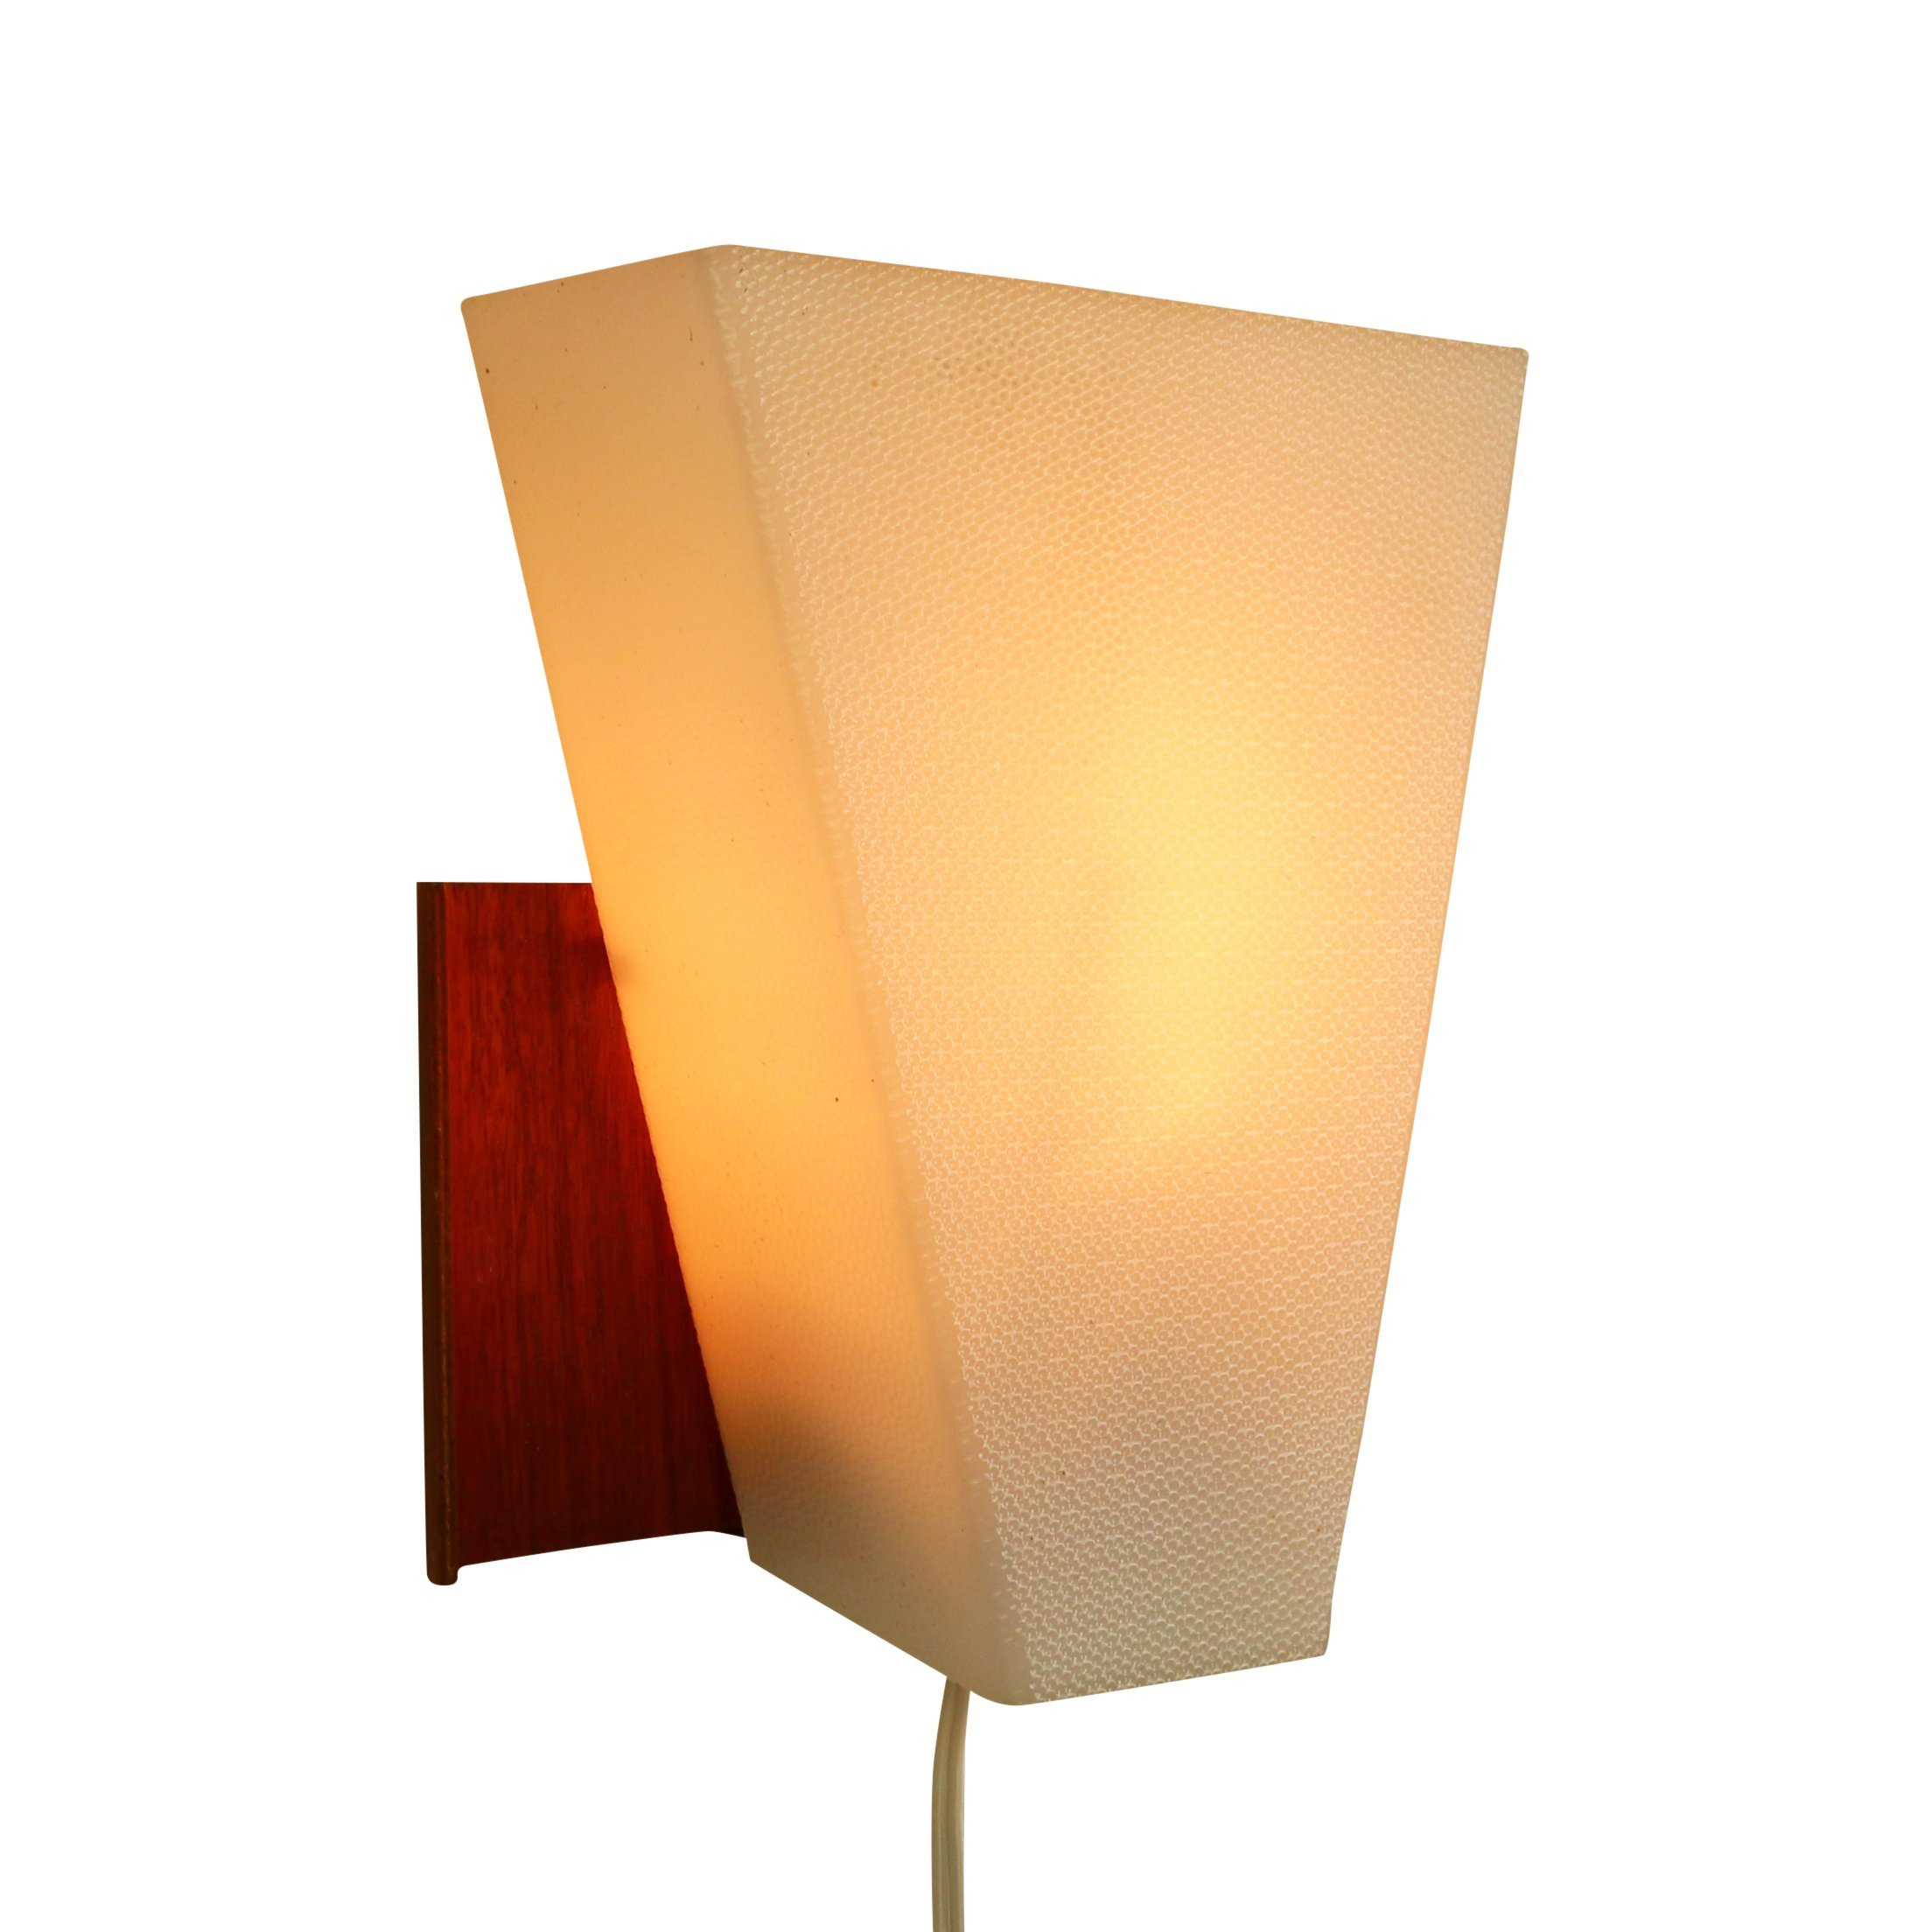 Wall Lights Made From Wood : Scandinavian wall light made of wood and plastic, 1960s #1073